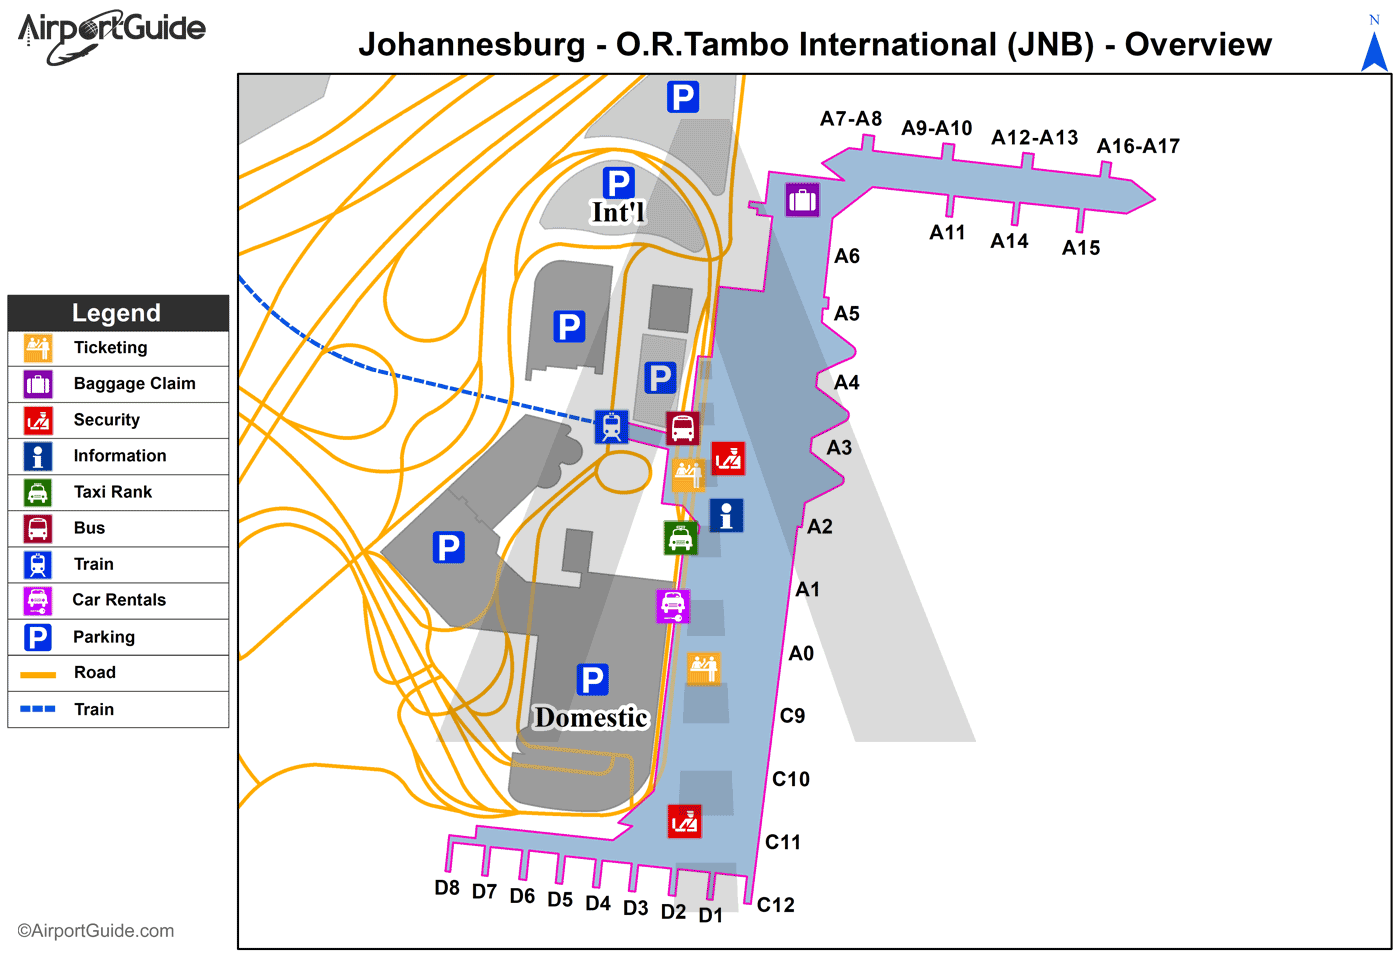 Airport Maps, Charts, Diagrams - OR Tambo International Airport - FAOR - JNB - Airport Guide